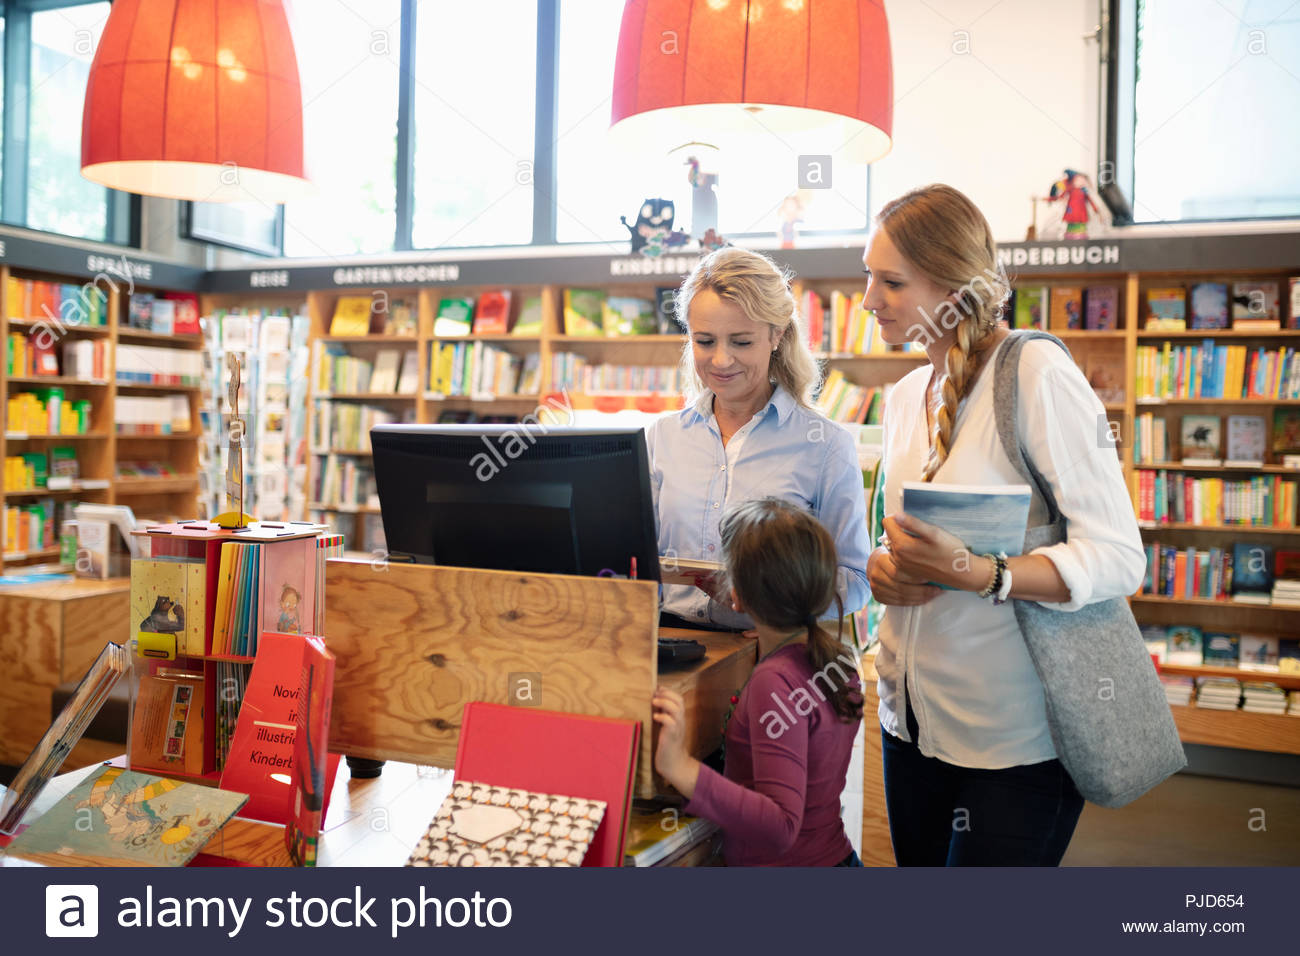 Bookstore worker helping mother and daughter at computer - Stock Image